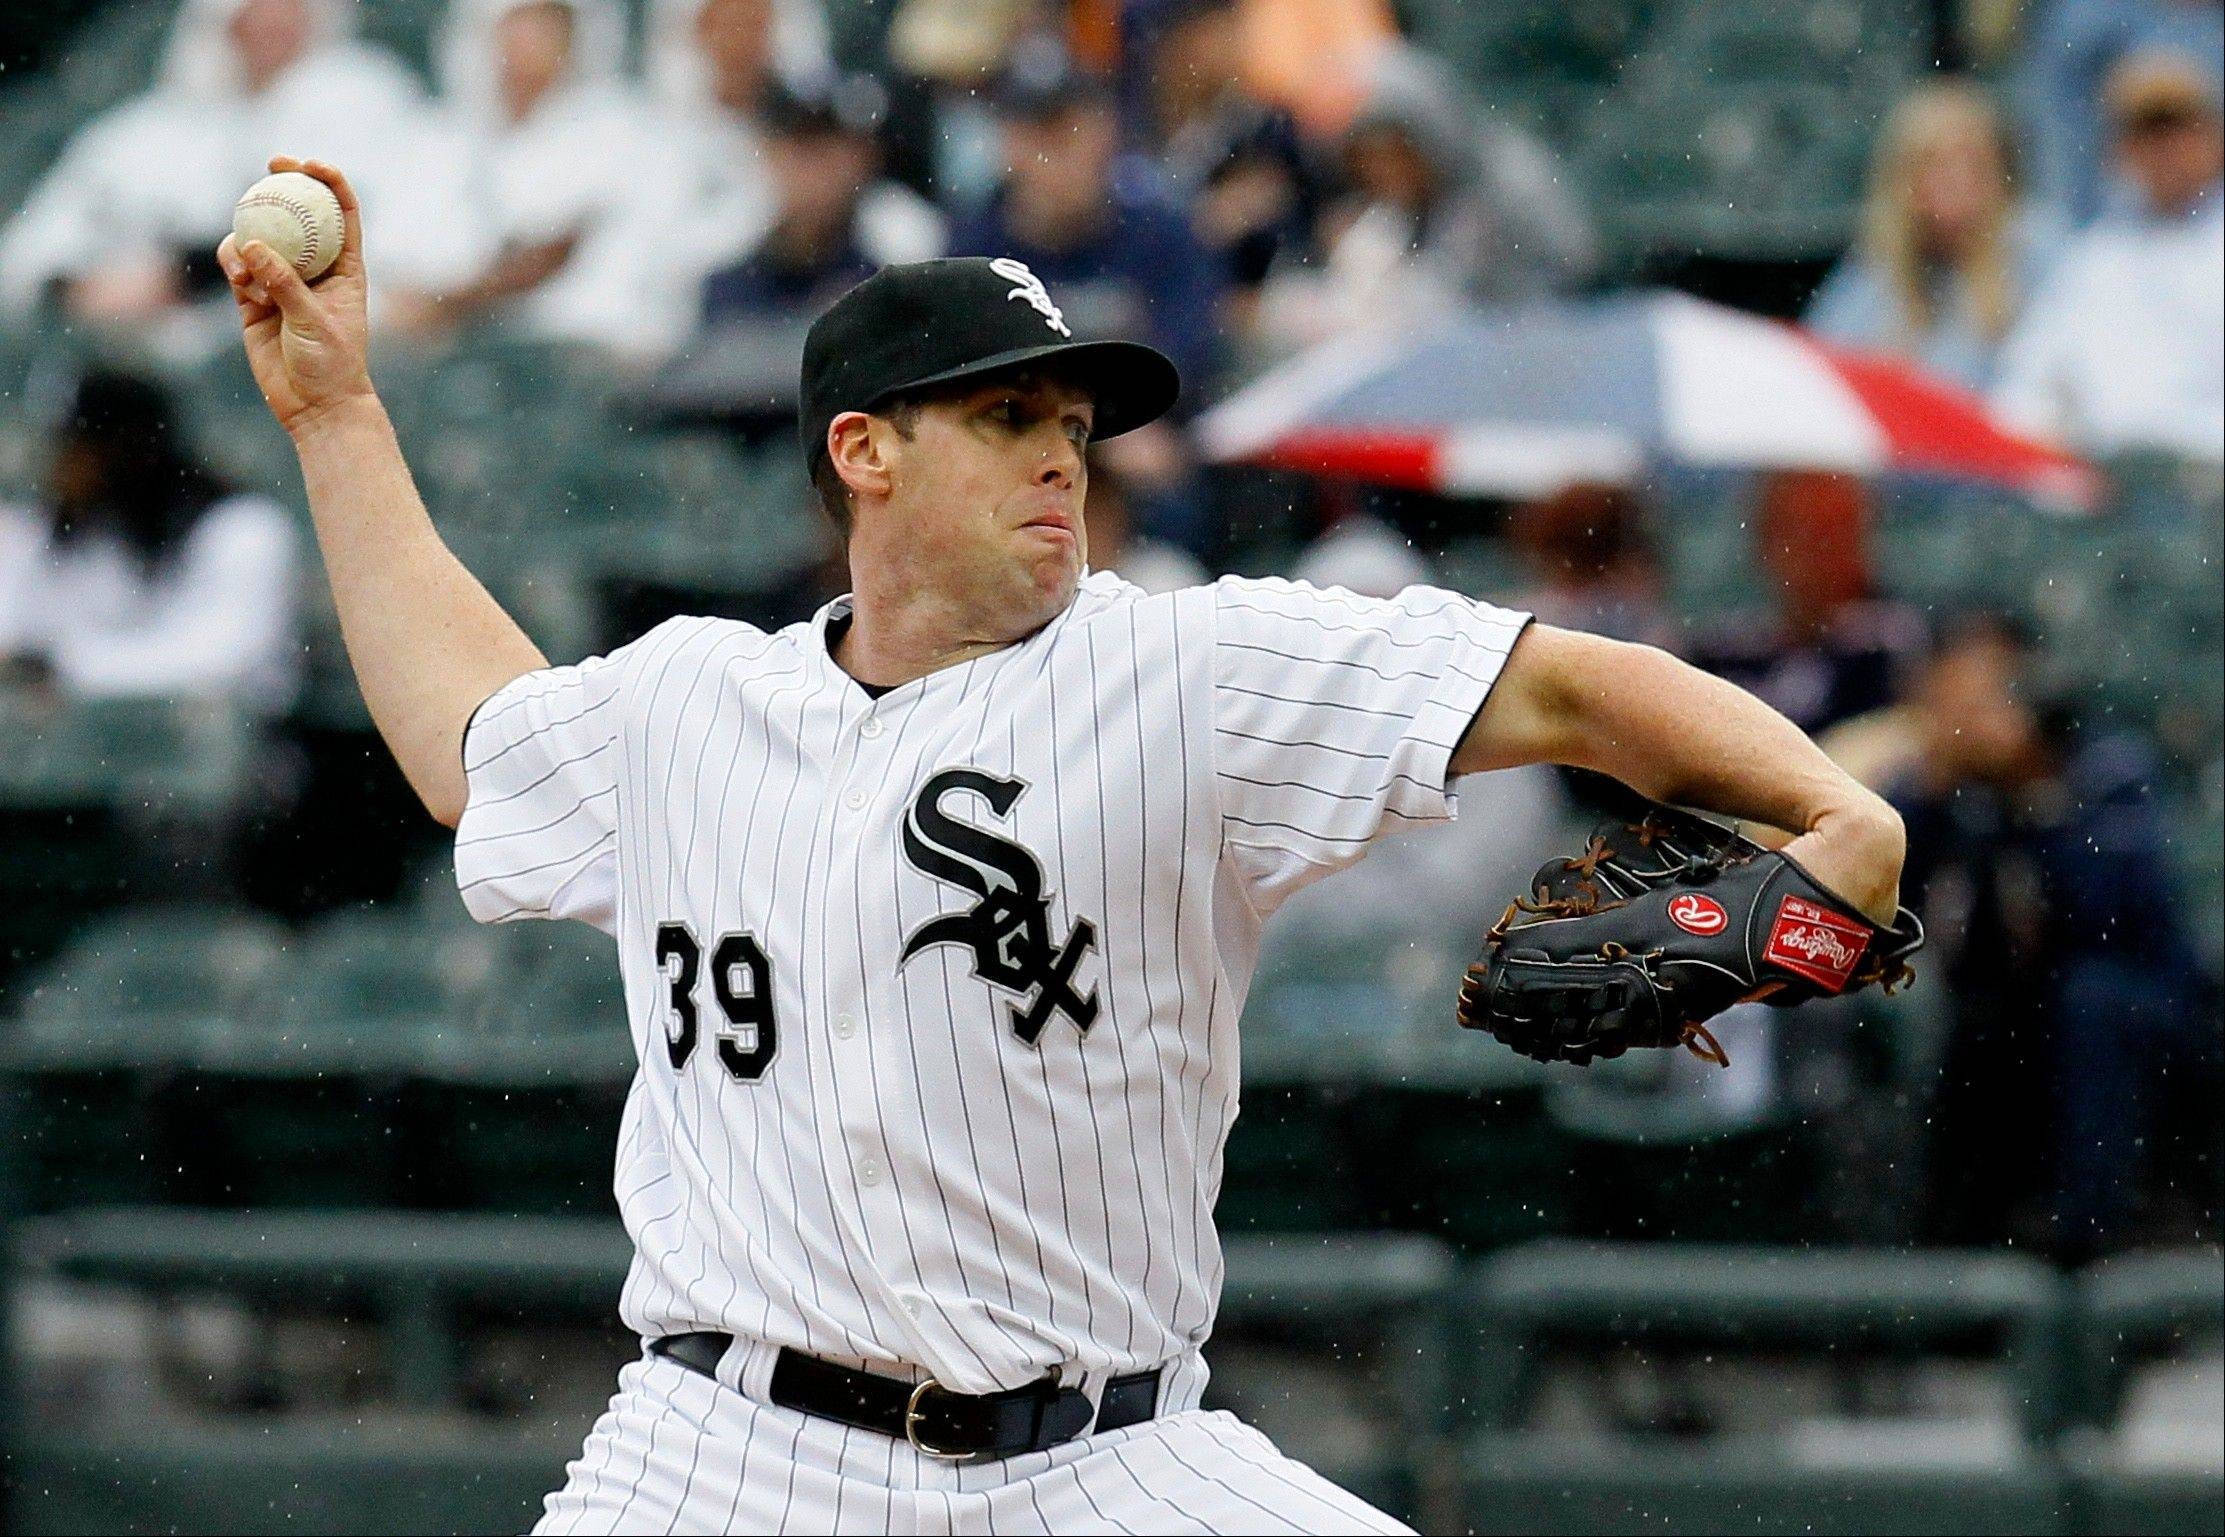 The White Sox' Dylan Axelrod allowed 2 runs on 6 hits in 6 innings with 8 strikeouts Wednesday against the Tigers in his first major-league start.